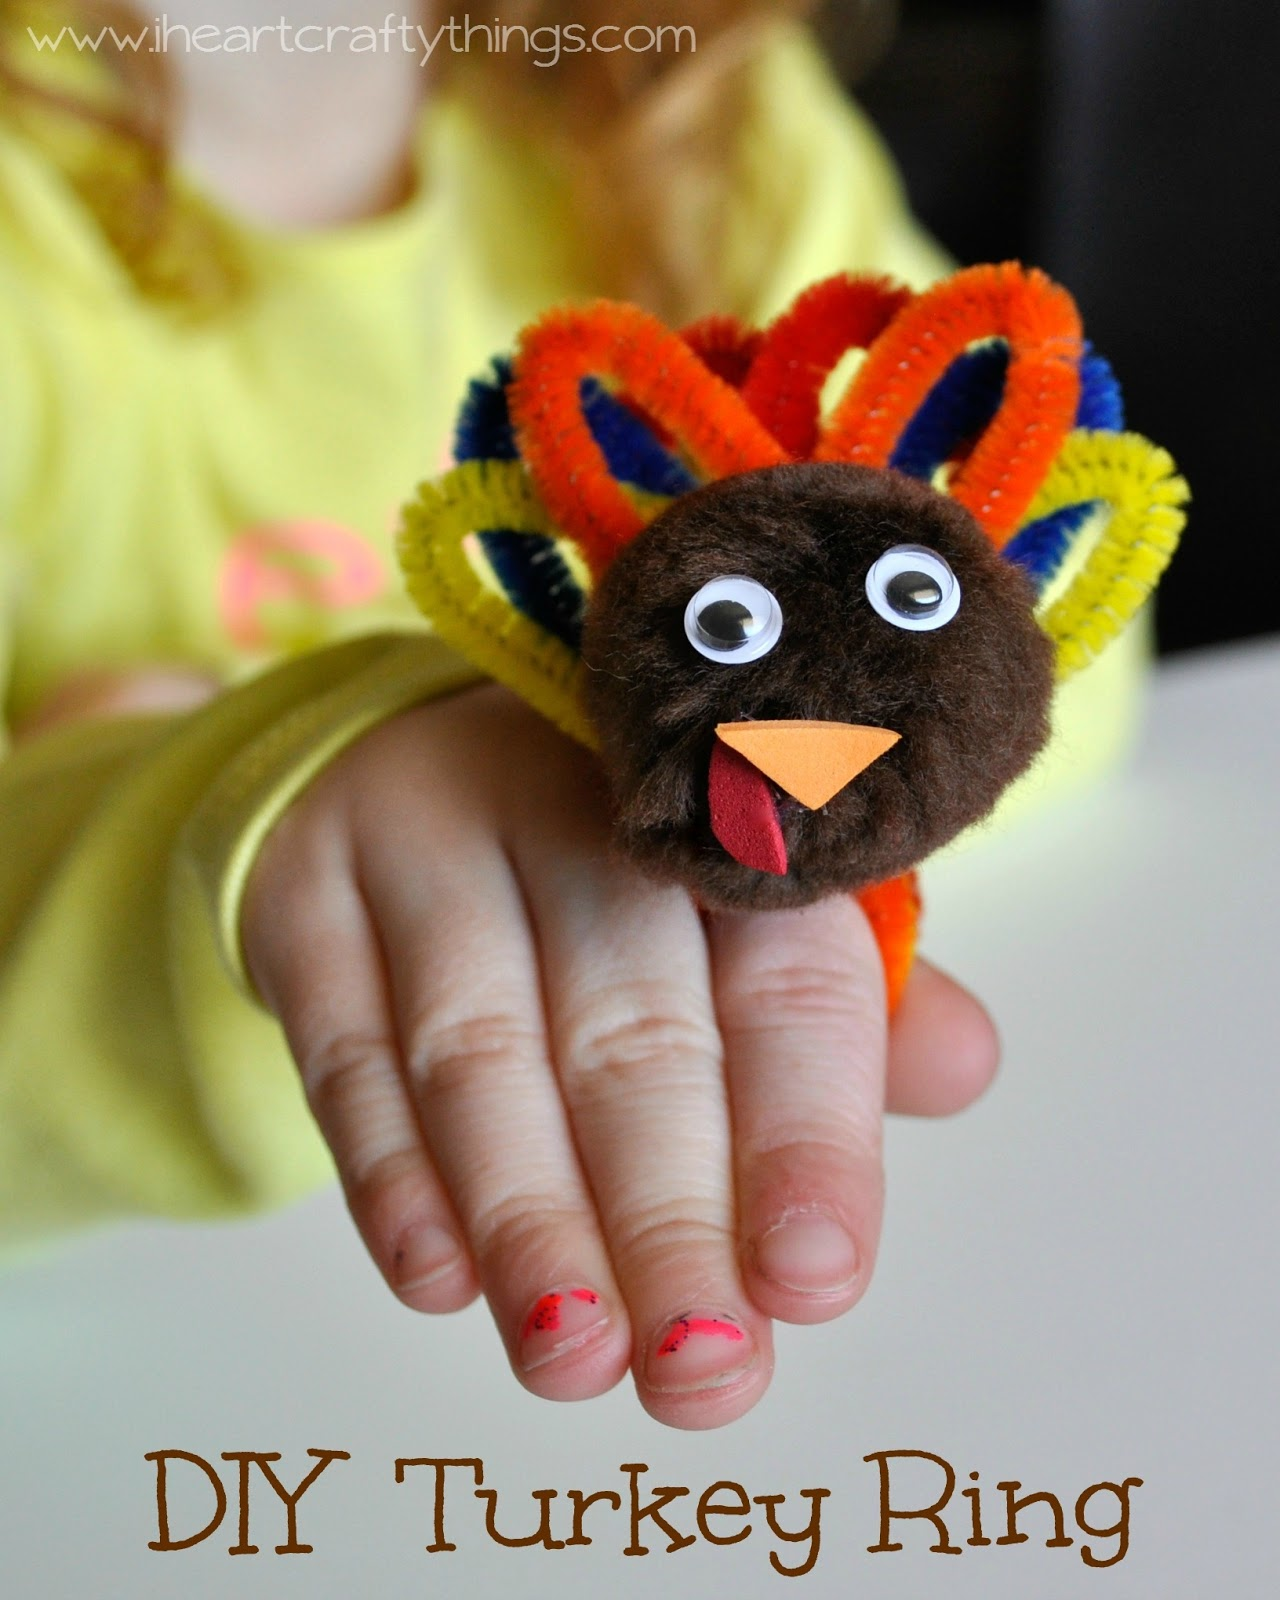 DIY Turkey Ring - I {heart} Crafty Things